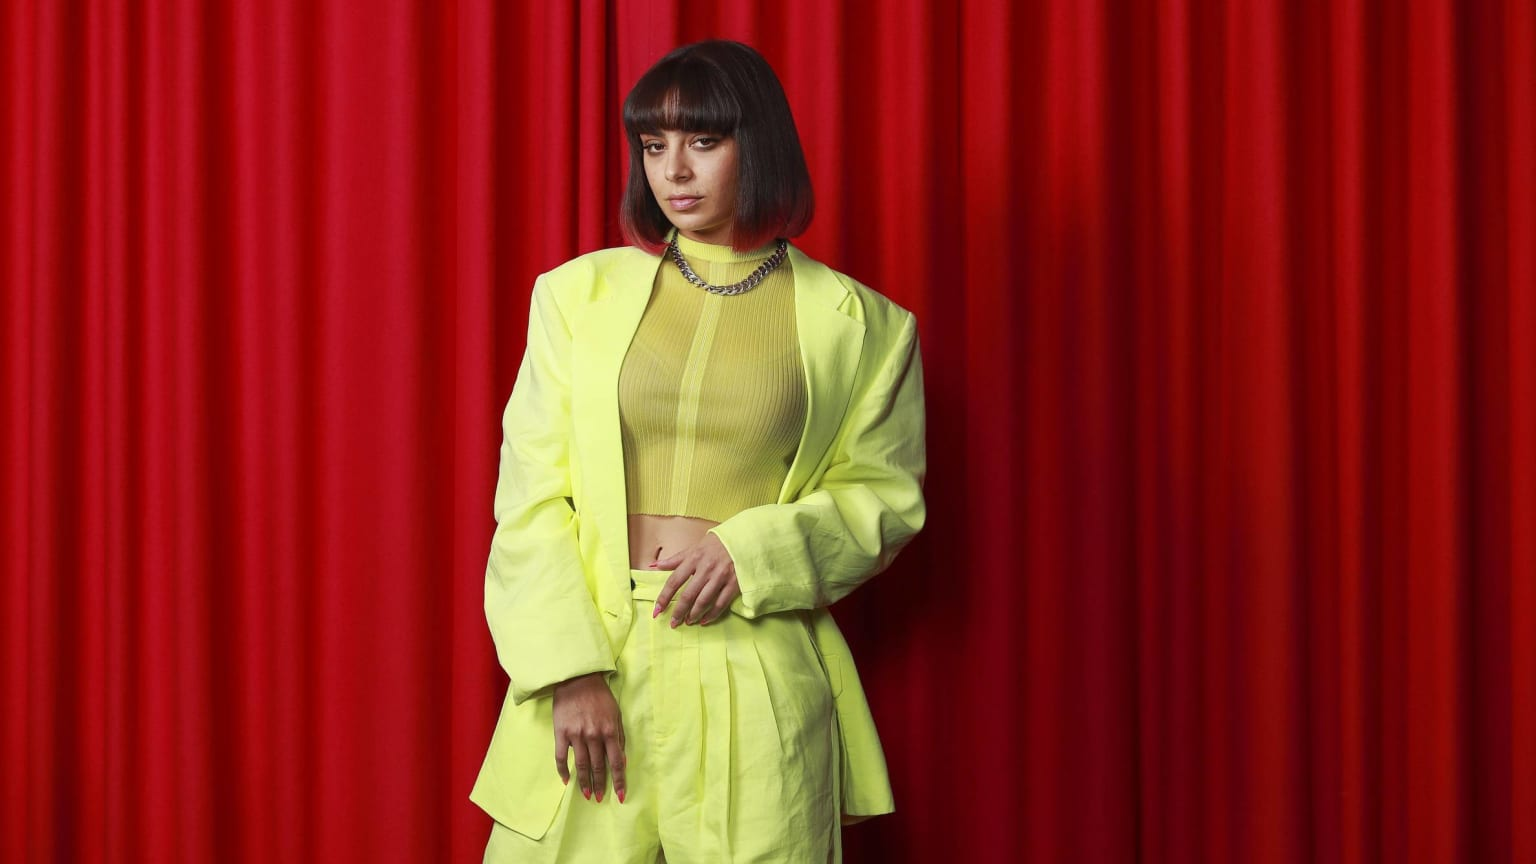 Charli XCX Tells Us How 'Charli' Breaks New Ground, Musically And Mentally